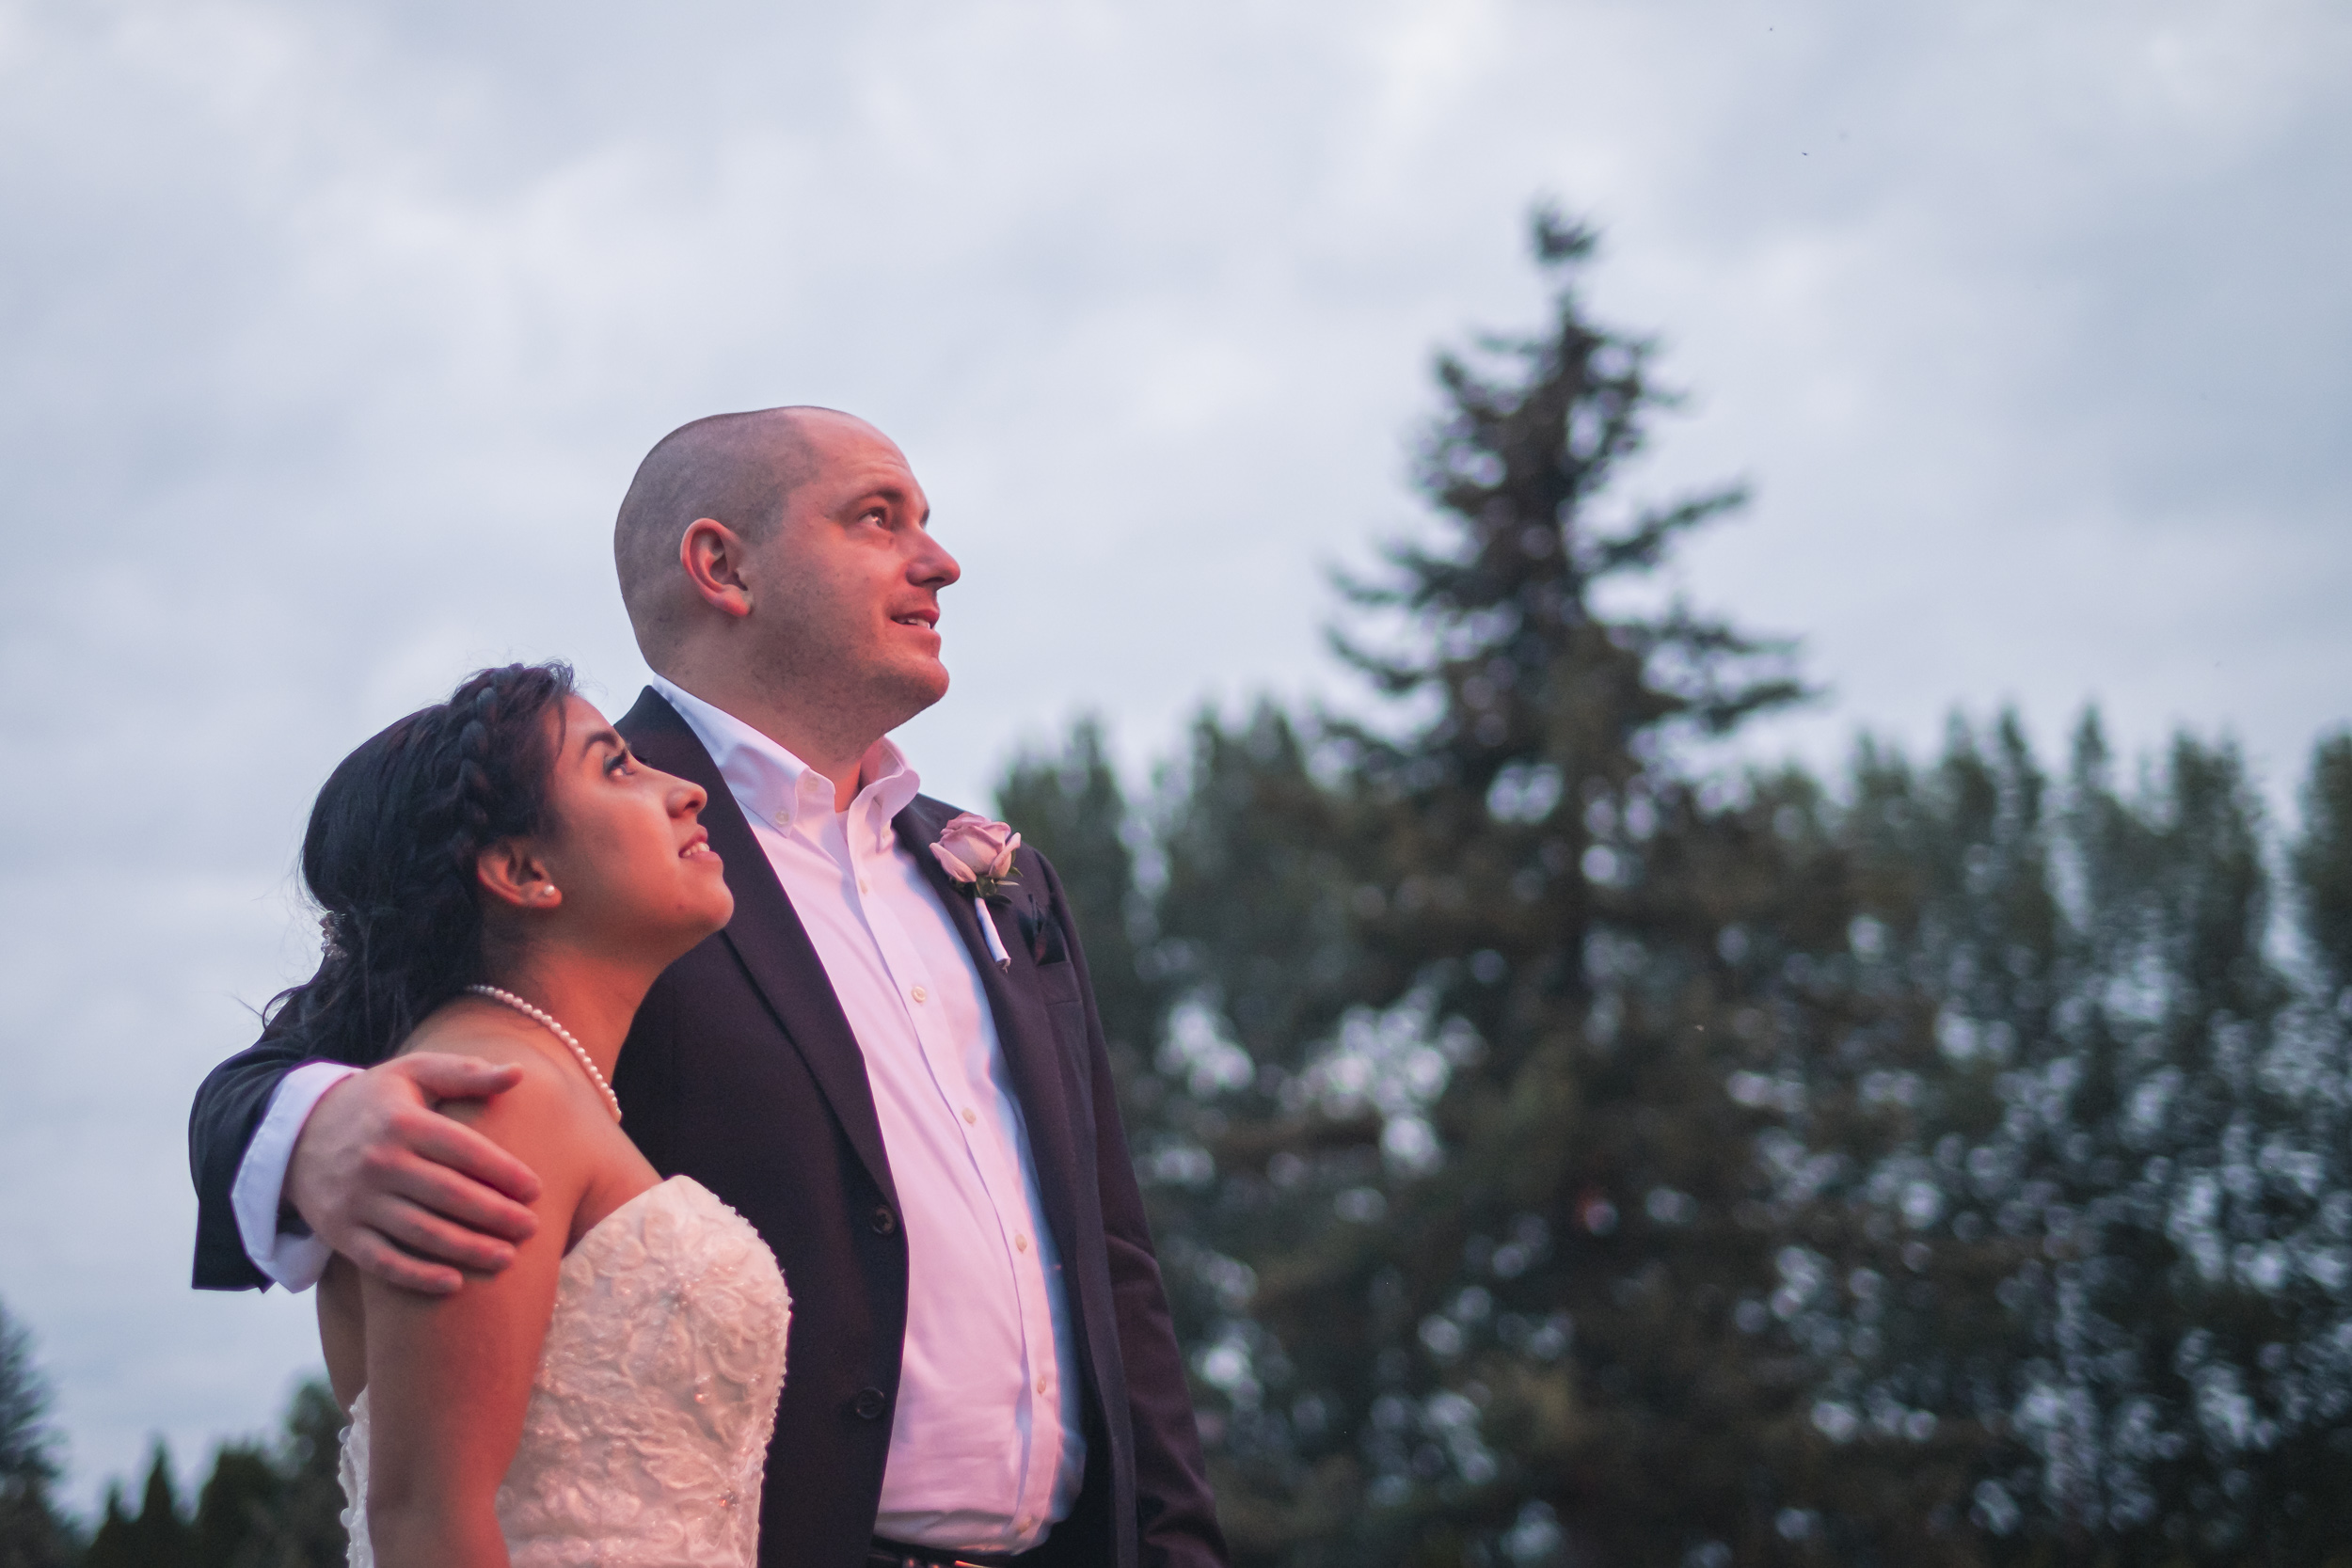 Natalie and Brian Wedding by Michael Sladek Photography-15.jpg